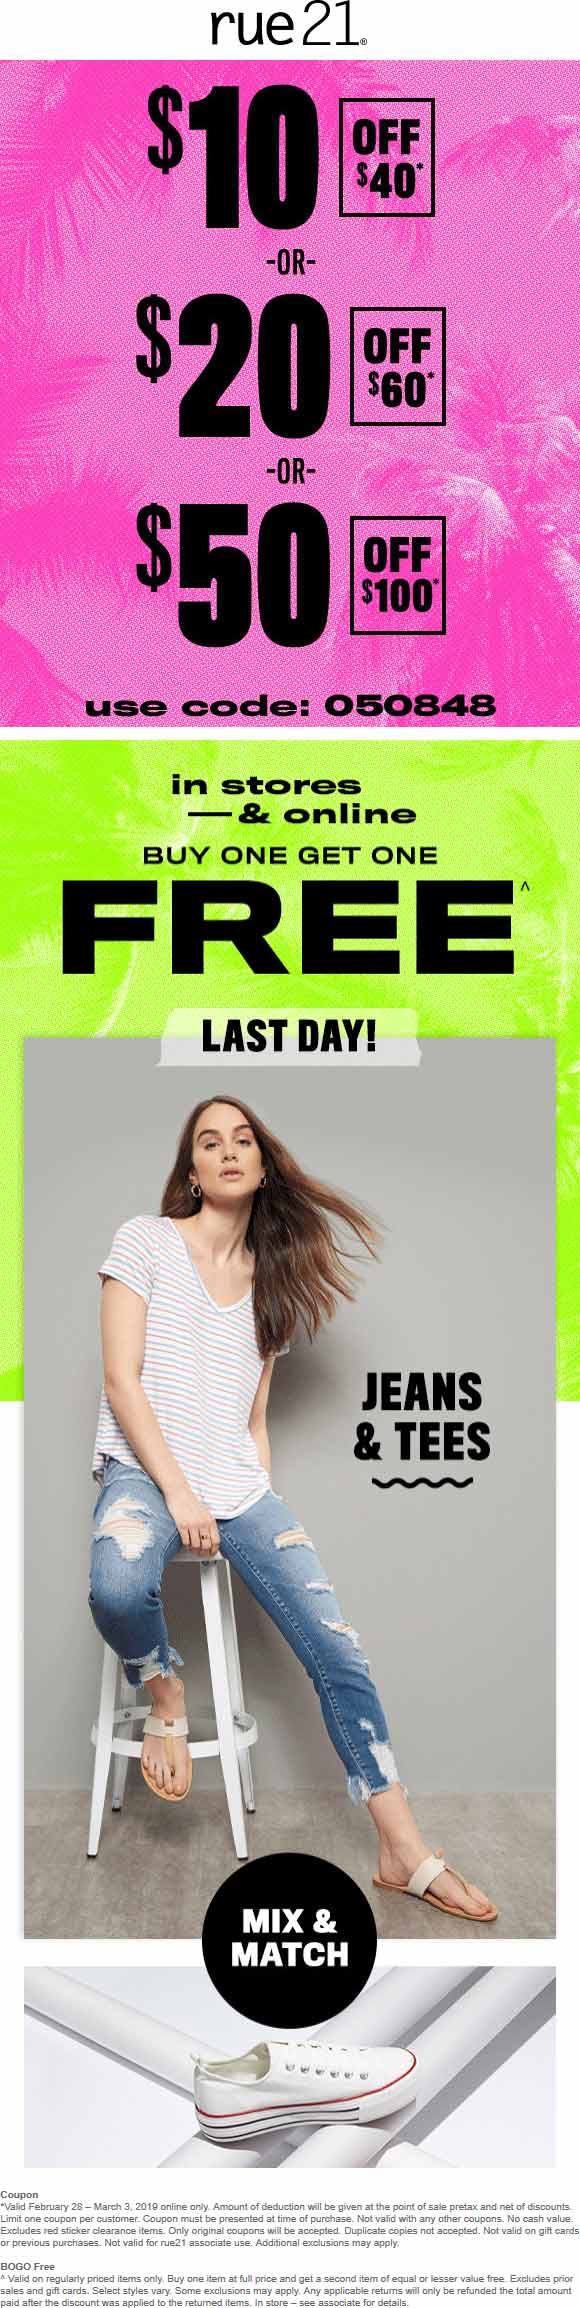 Rue21 Coupon July 2020 Second item free today at rue21, also $10-$50 off $40+ online via promo code 050848